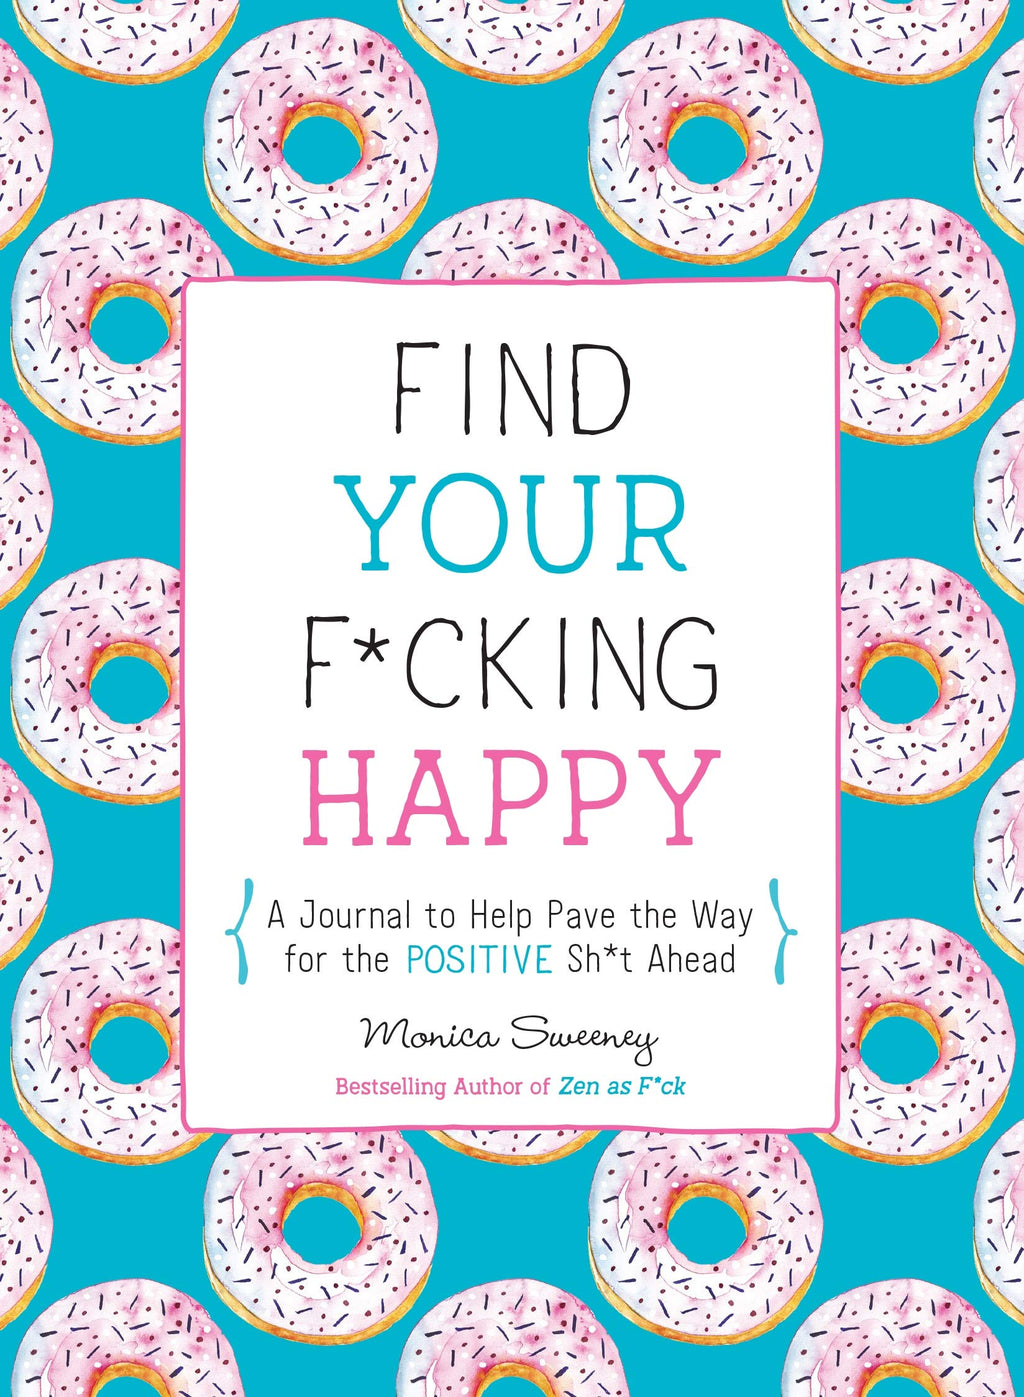 Find Your F*cking Happy by Monica Sweeney